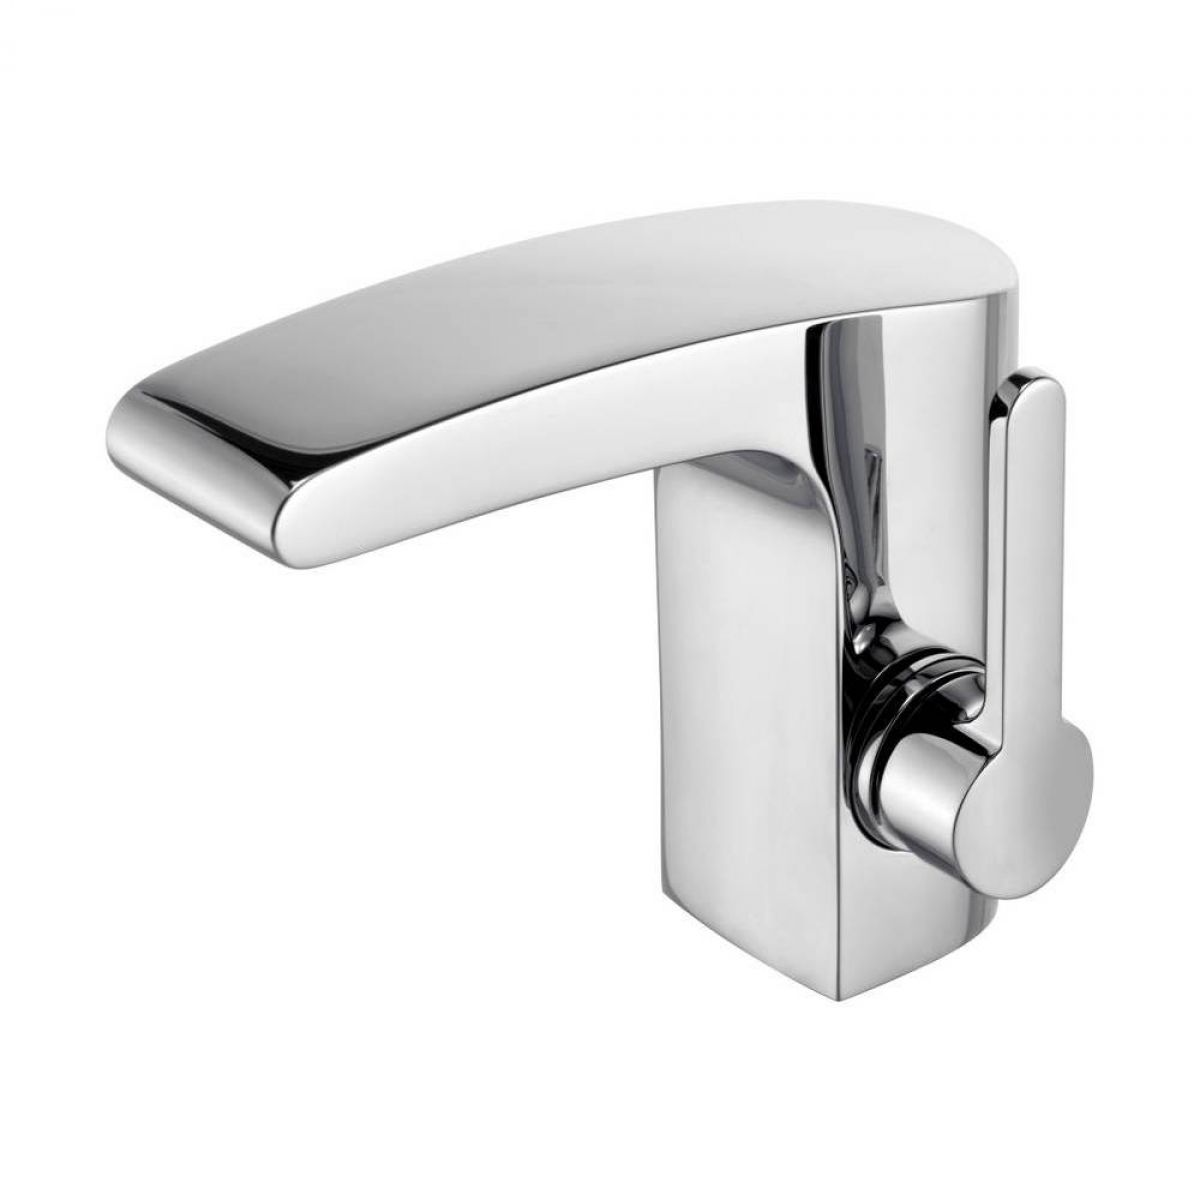 keuco elegance basin mixer tap 120 uk bathrooms. Black Bedroom Furniture Sets. Home Design Ideas